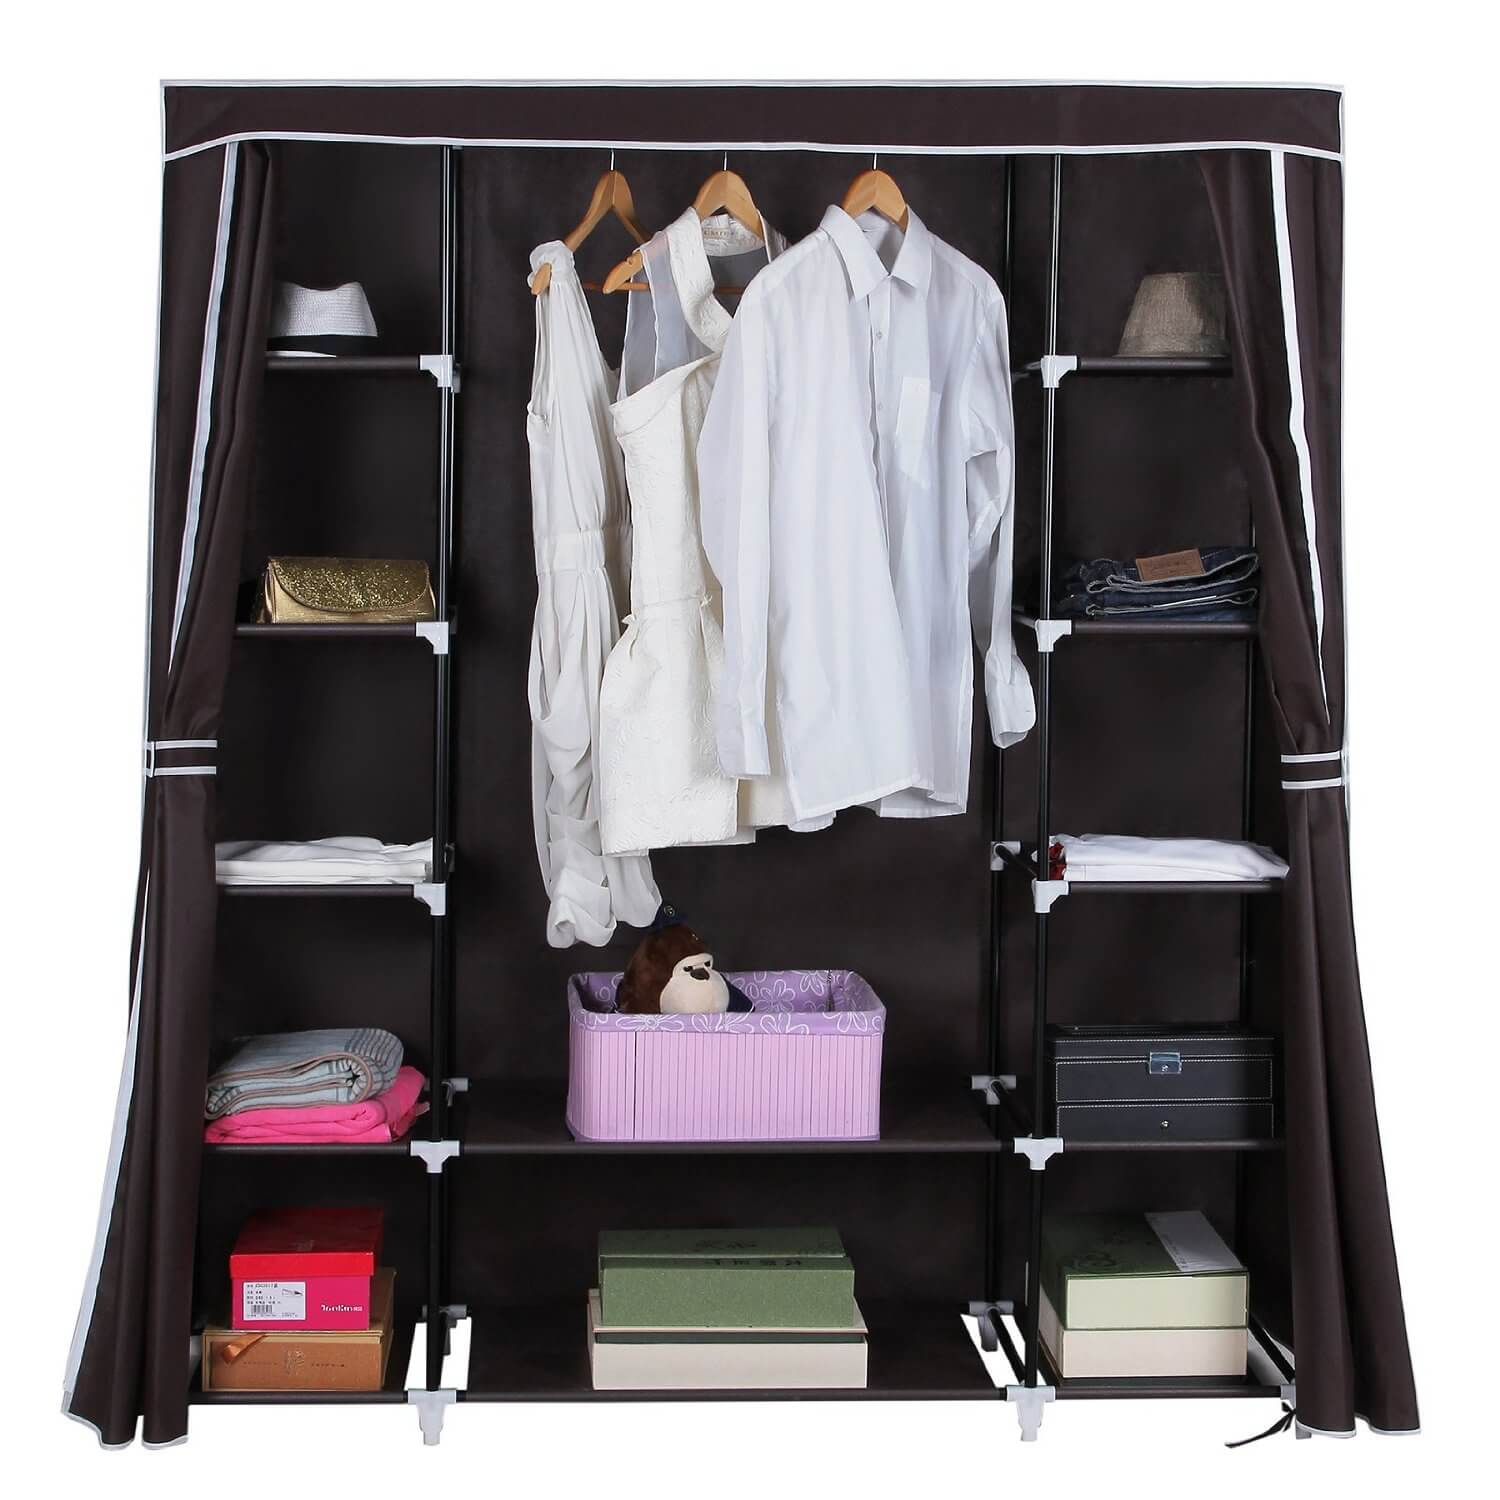 This portable and collapsible storage solution can be a wardrobe on its own, or serve as a closet storage solution.